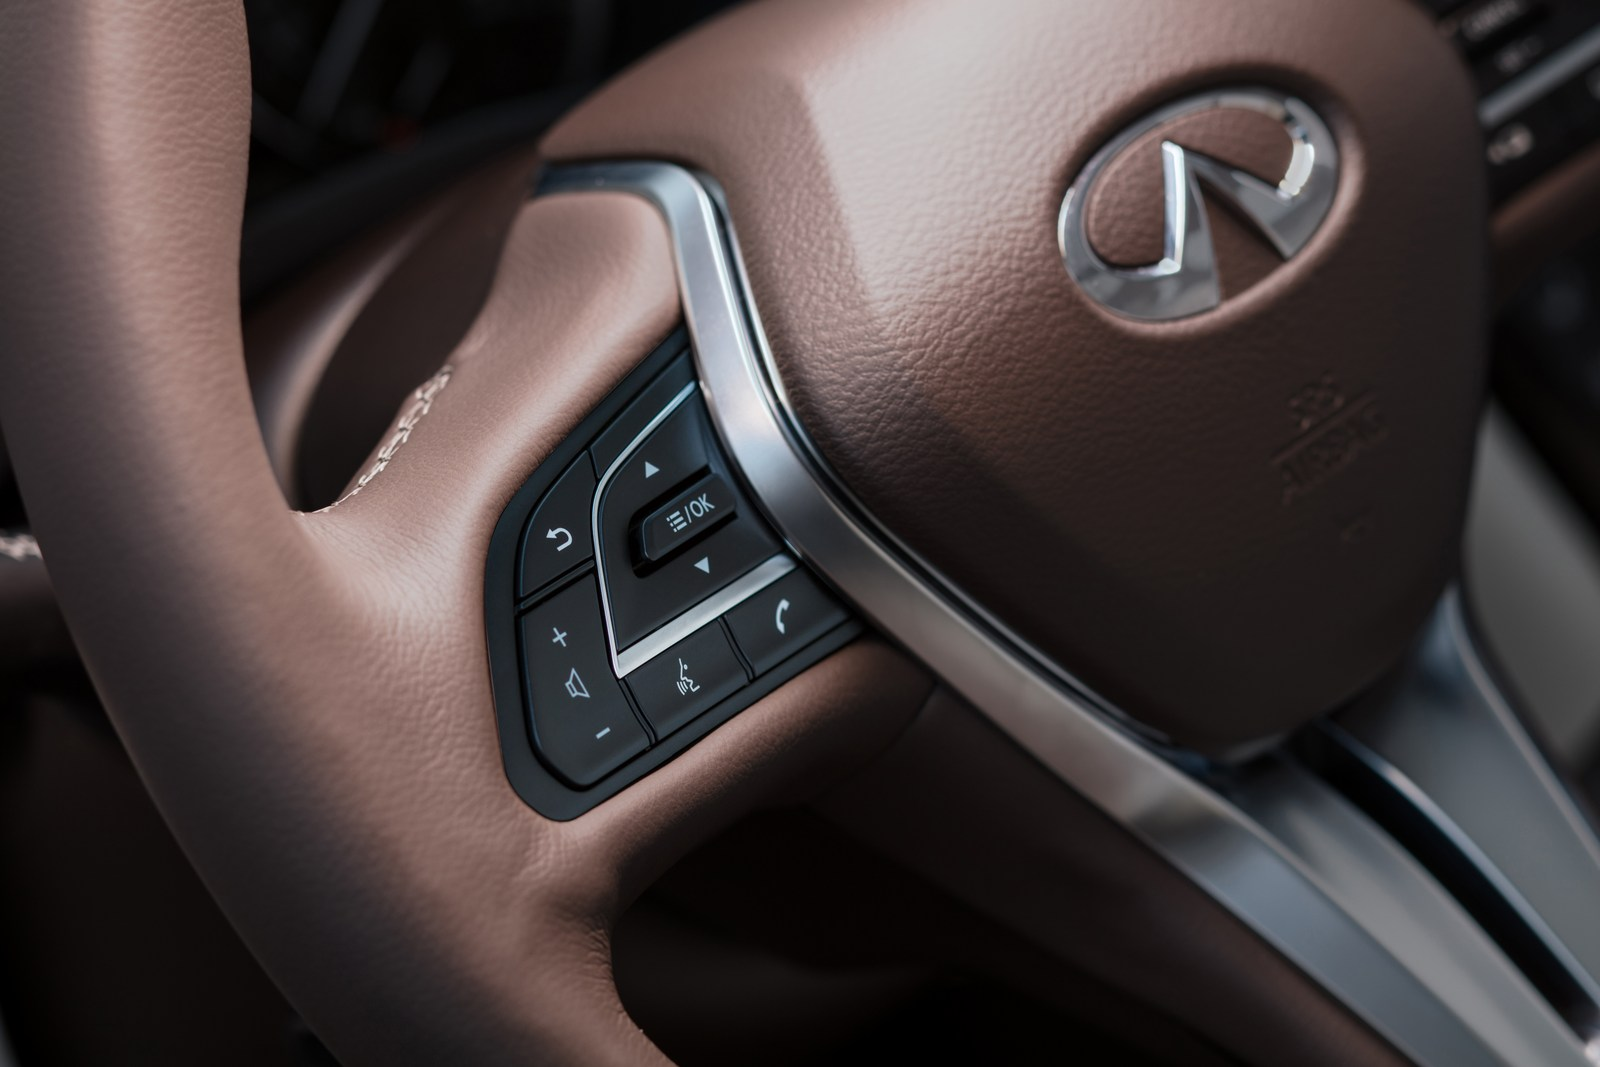 The all-new QX50 is a premium mid-size SUV with world-first technologies, stand-out design and class-leading interior space Ð on an entirely new platform.